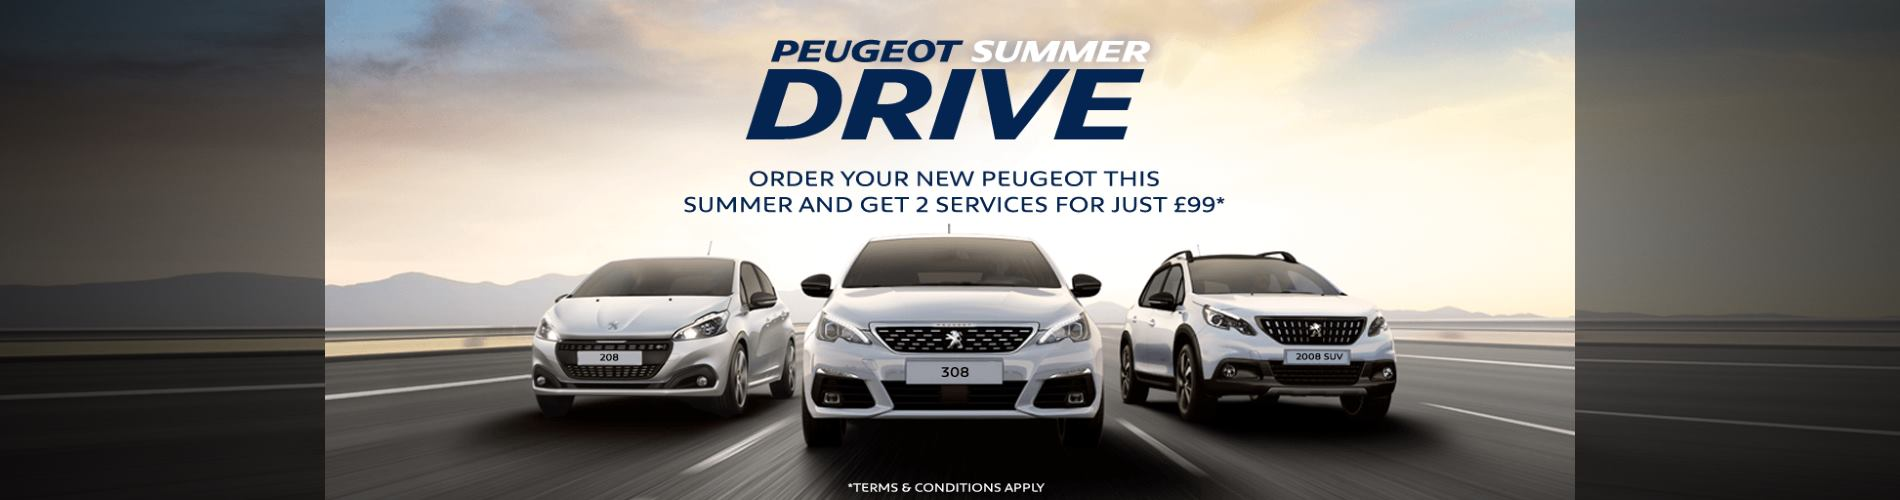 New Peugeot Summer Drive Offer at Wycliffe Peugeot Rugby